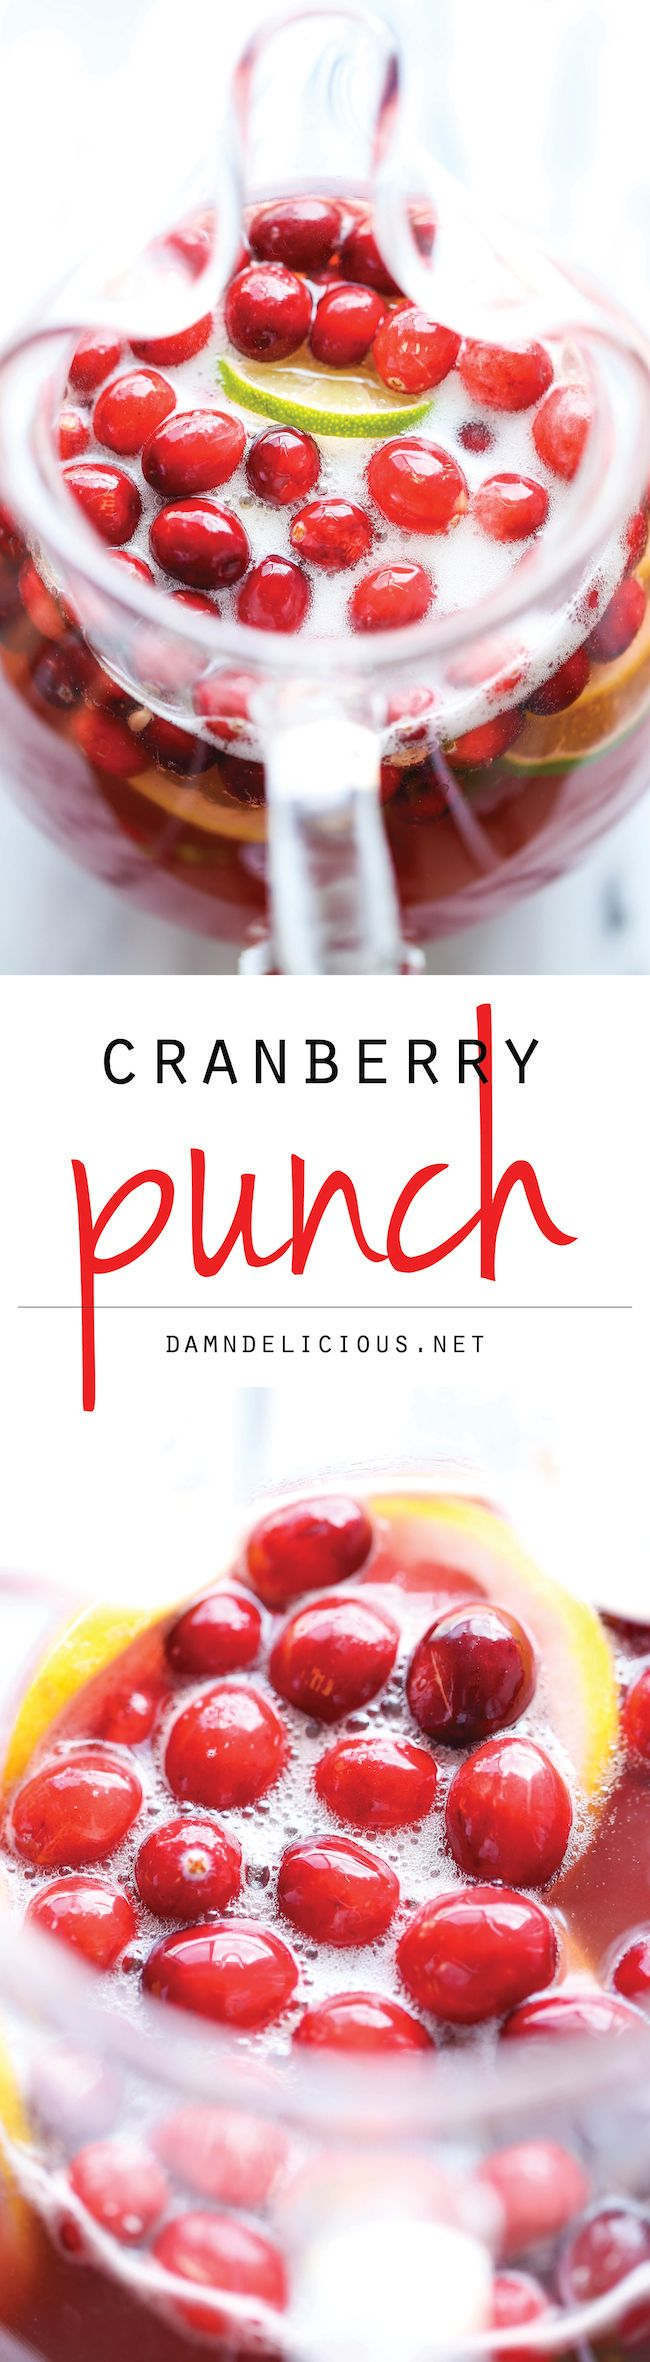 Cranberry Punch:  A super easy, refreshing drink so perfect for the holidays! And you can even make this an alcoholic drink for the grown-ups!